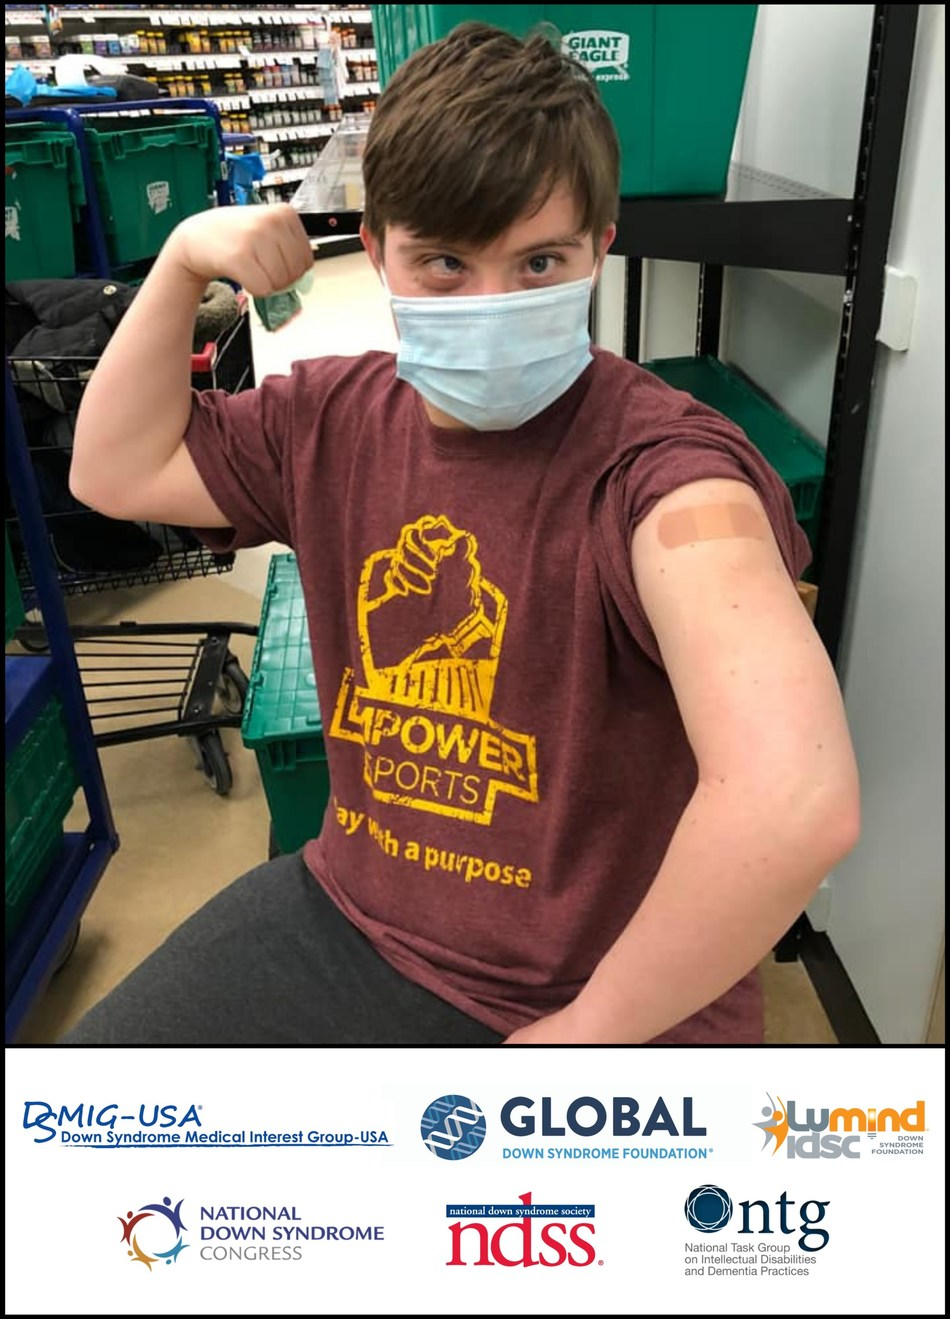 Courtesy of Global Down Syndrome Foundation